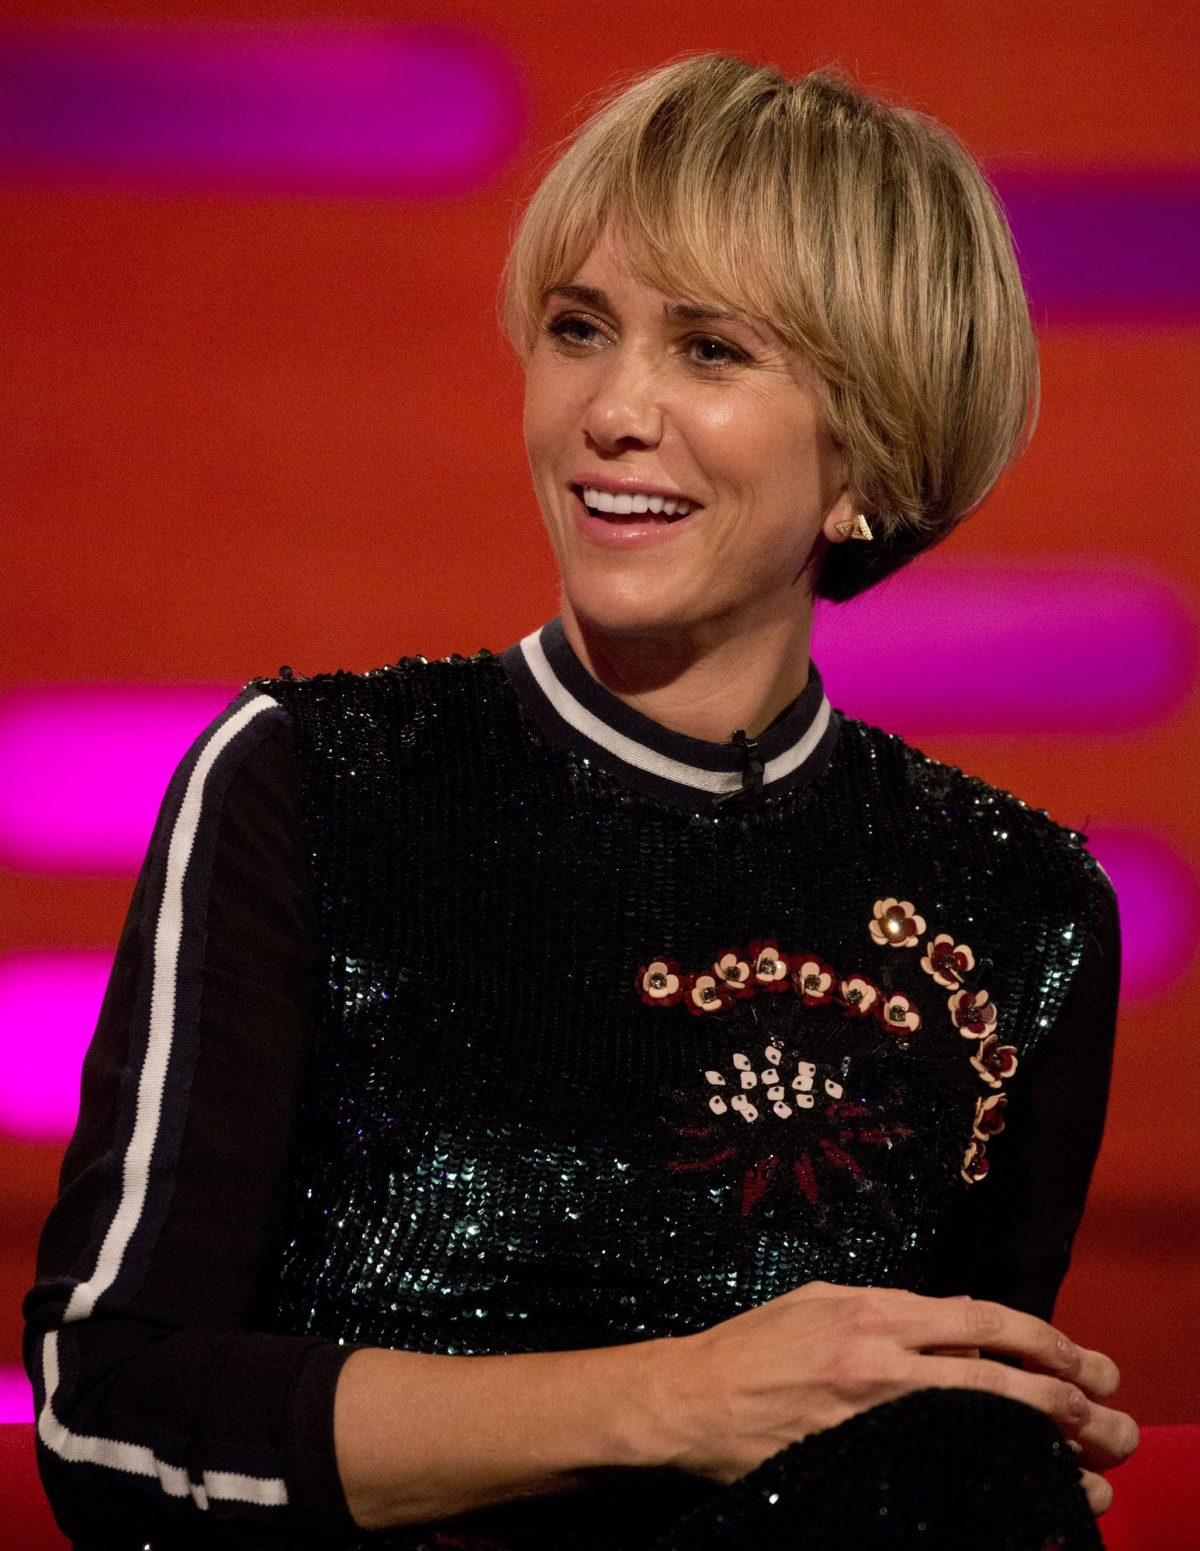 Kristen Wiig on The Graham Norton Show